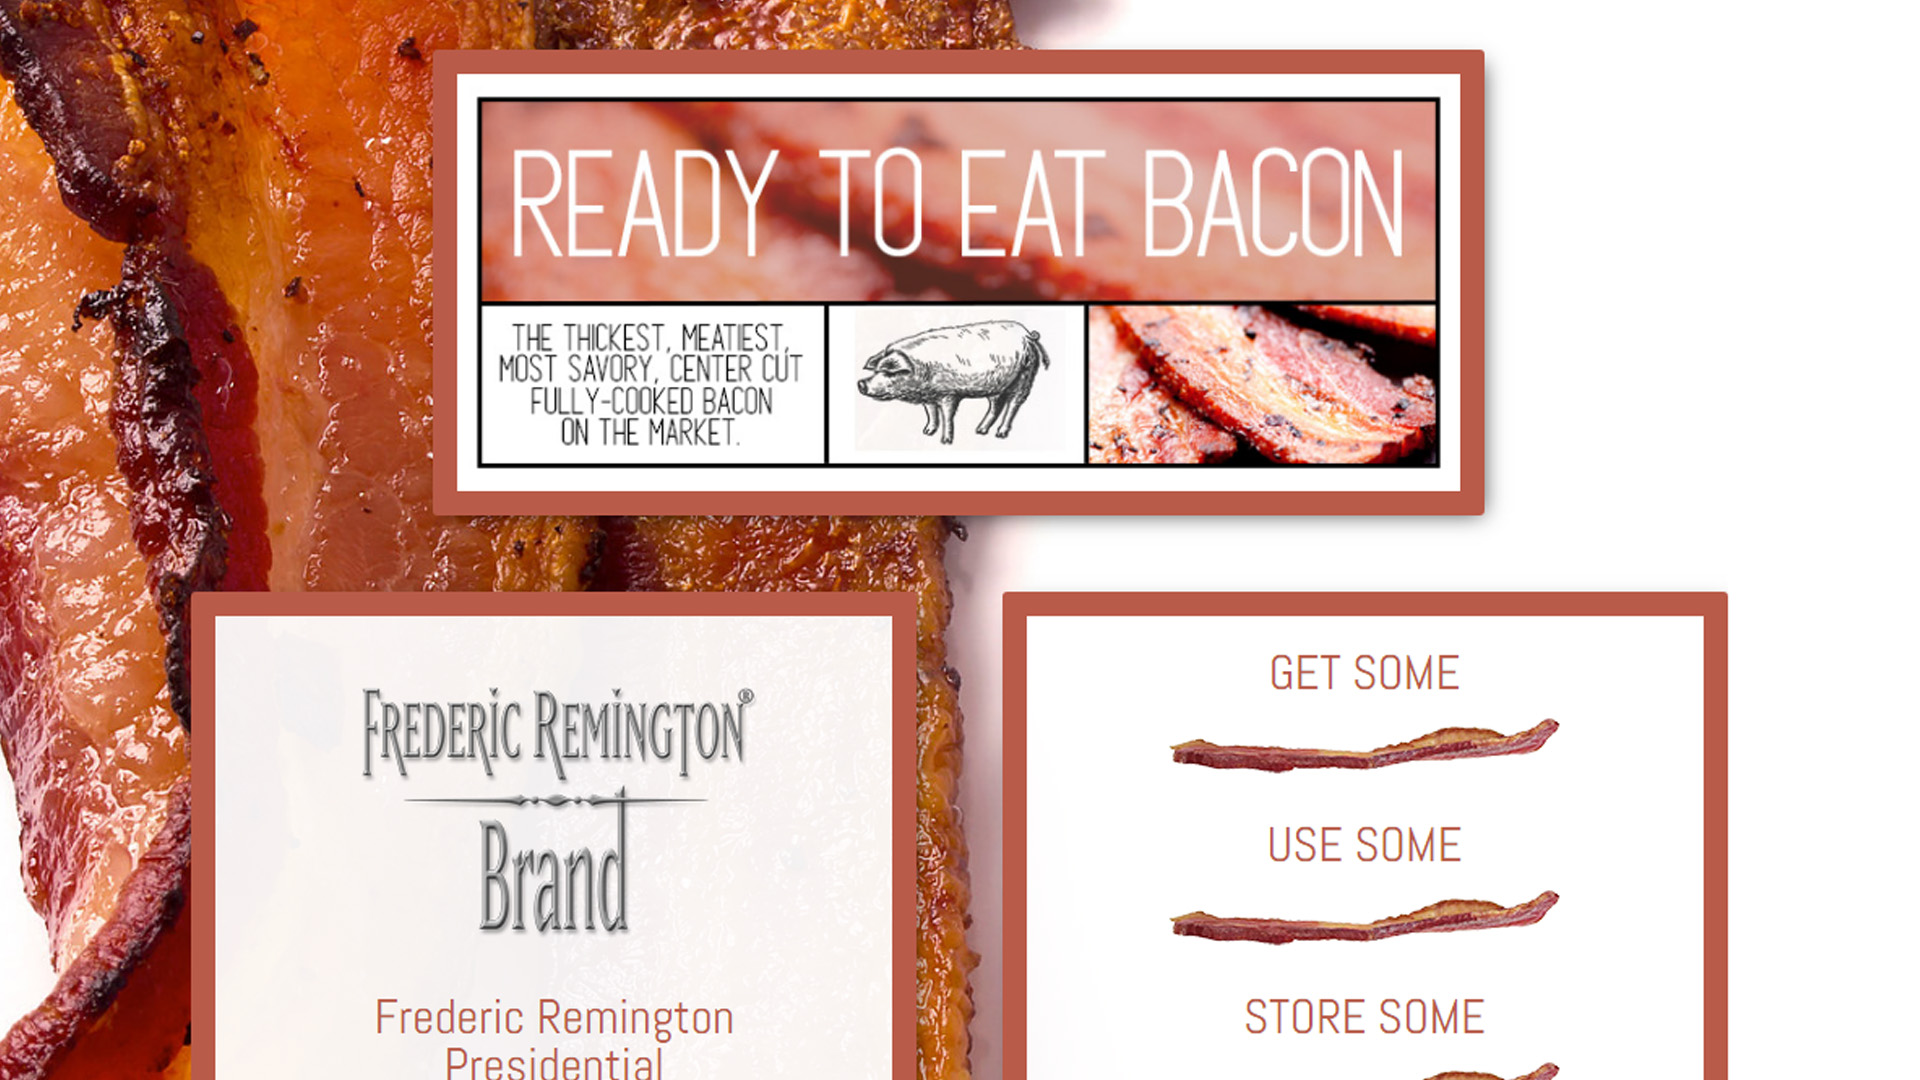 fredericremingtonbacon.com by luke bullock screenshot